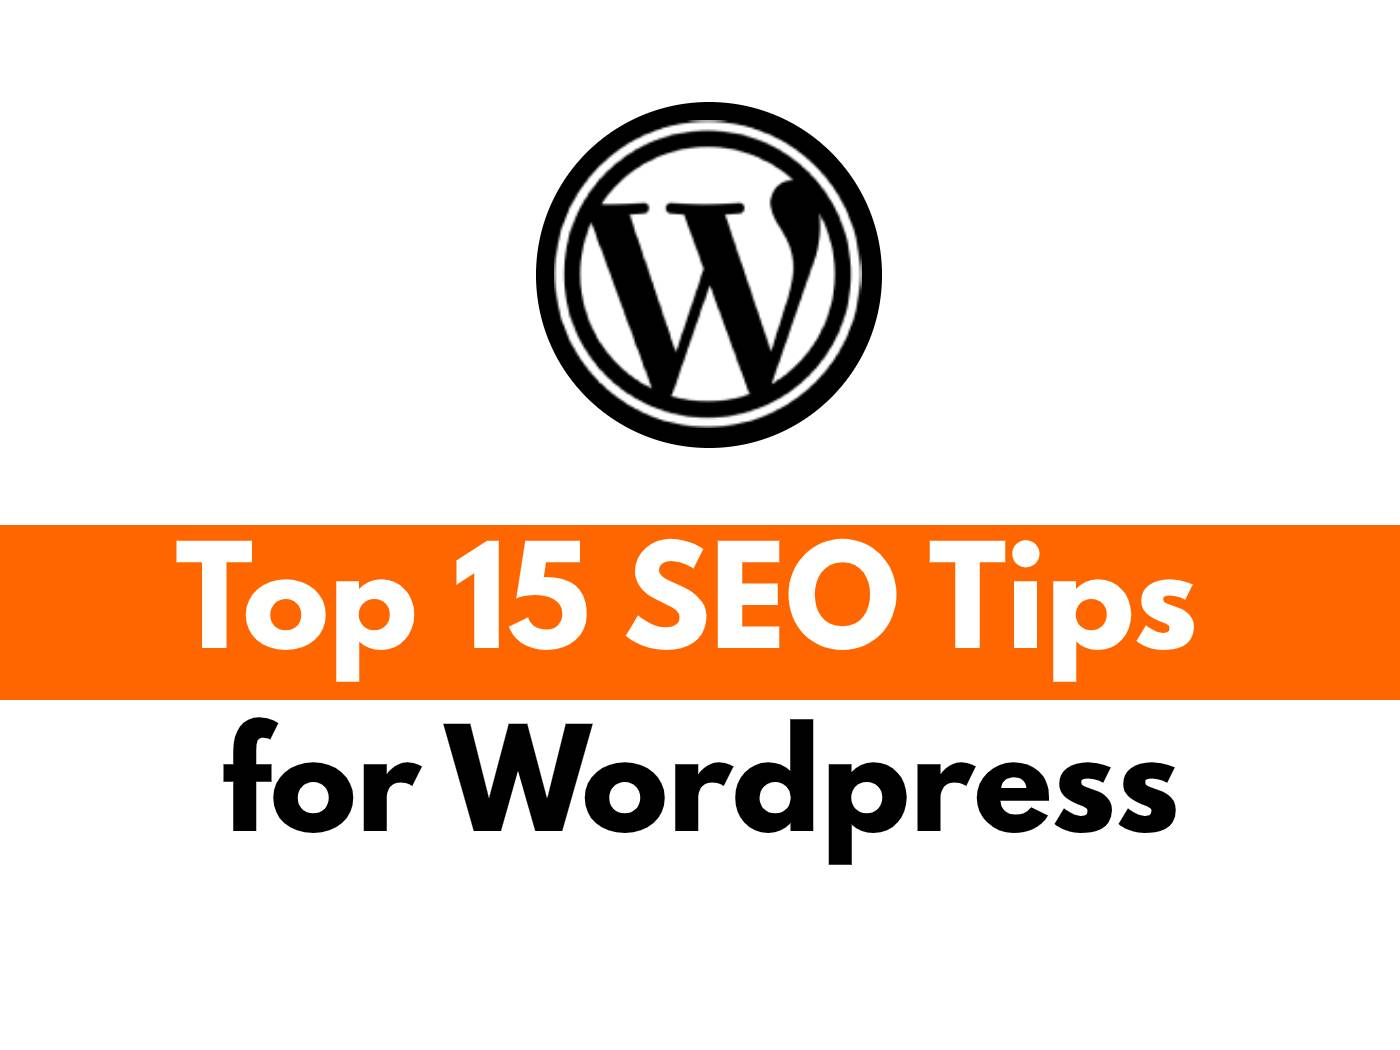 15 Best WordPress SEO Tips & Techniques to Boost Rankings